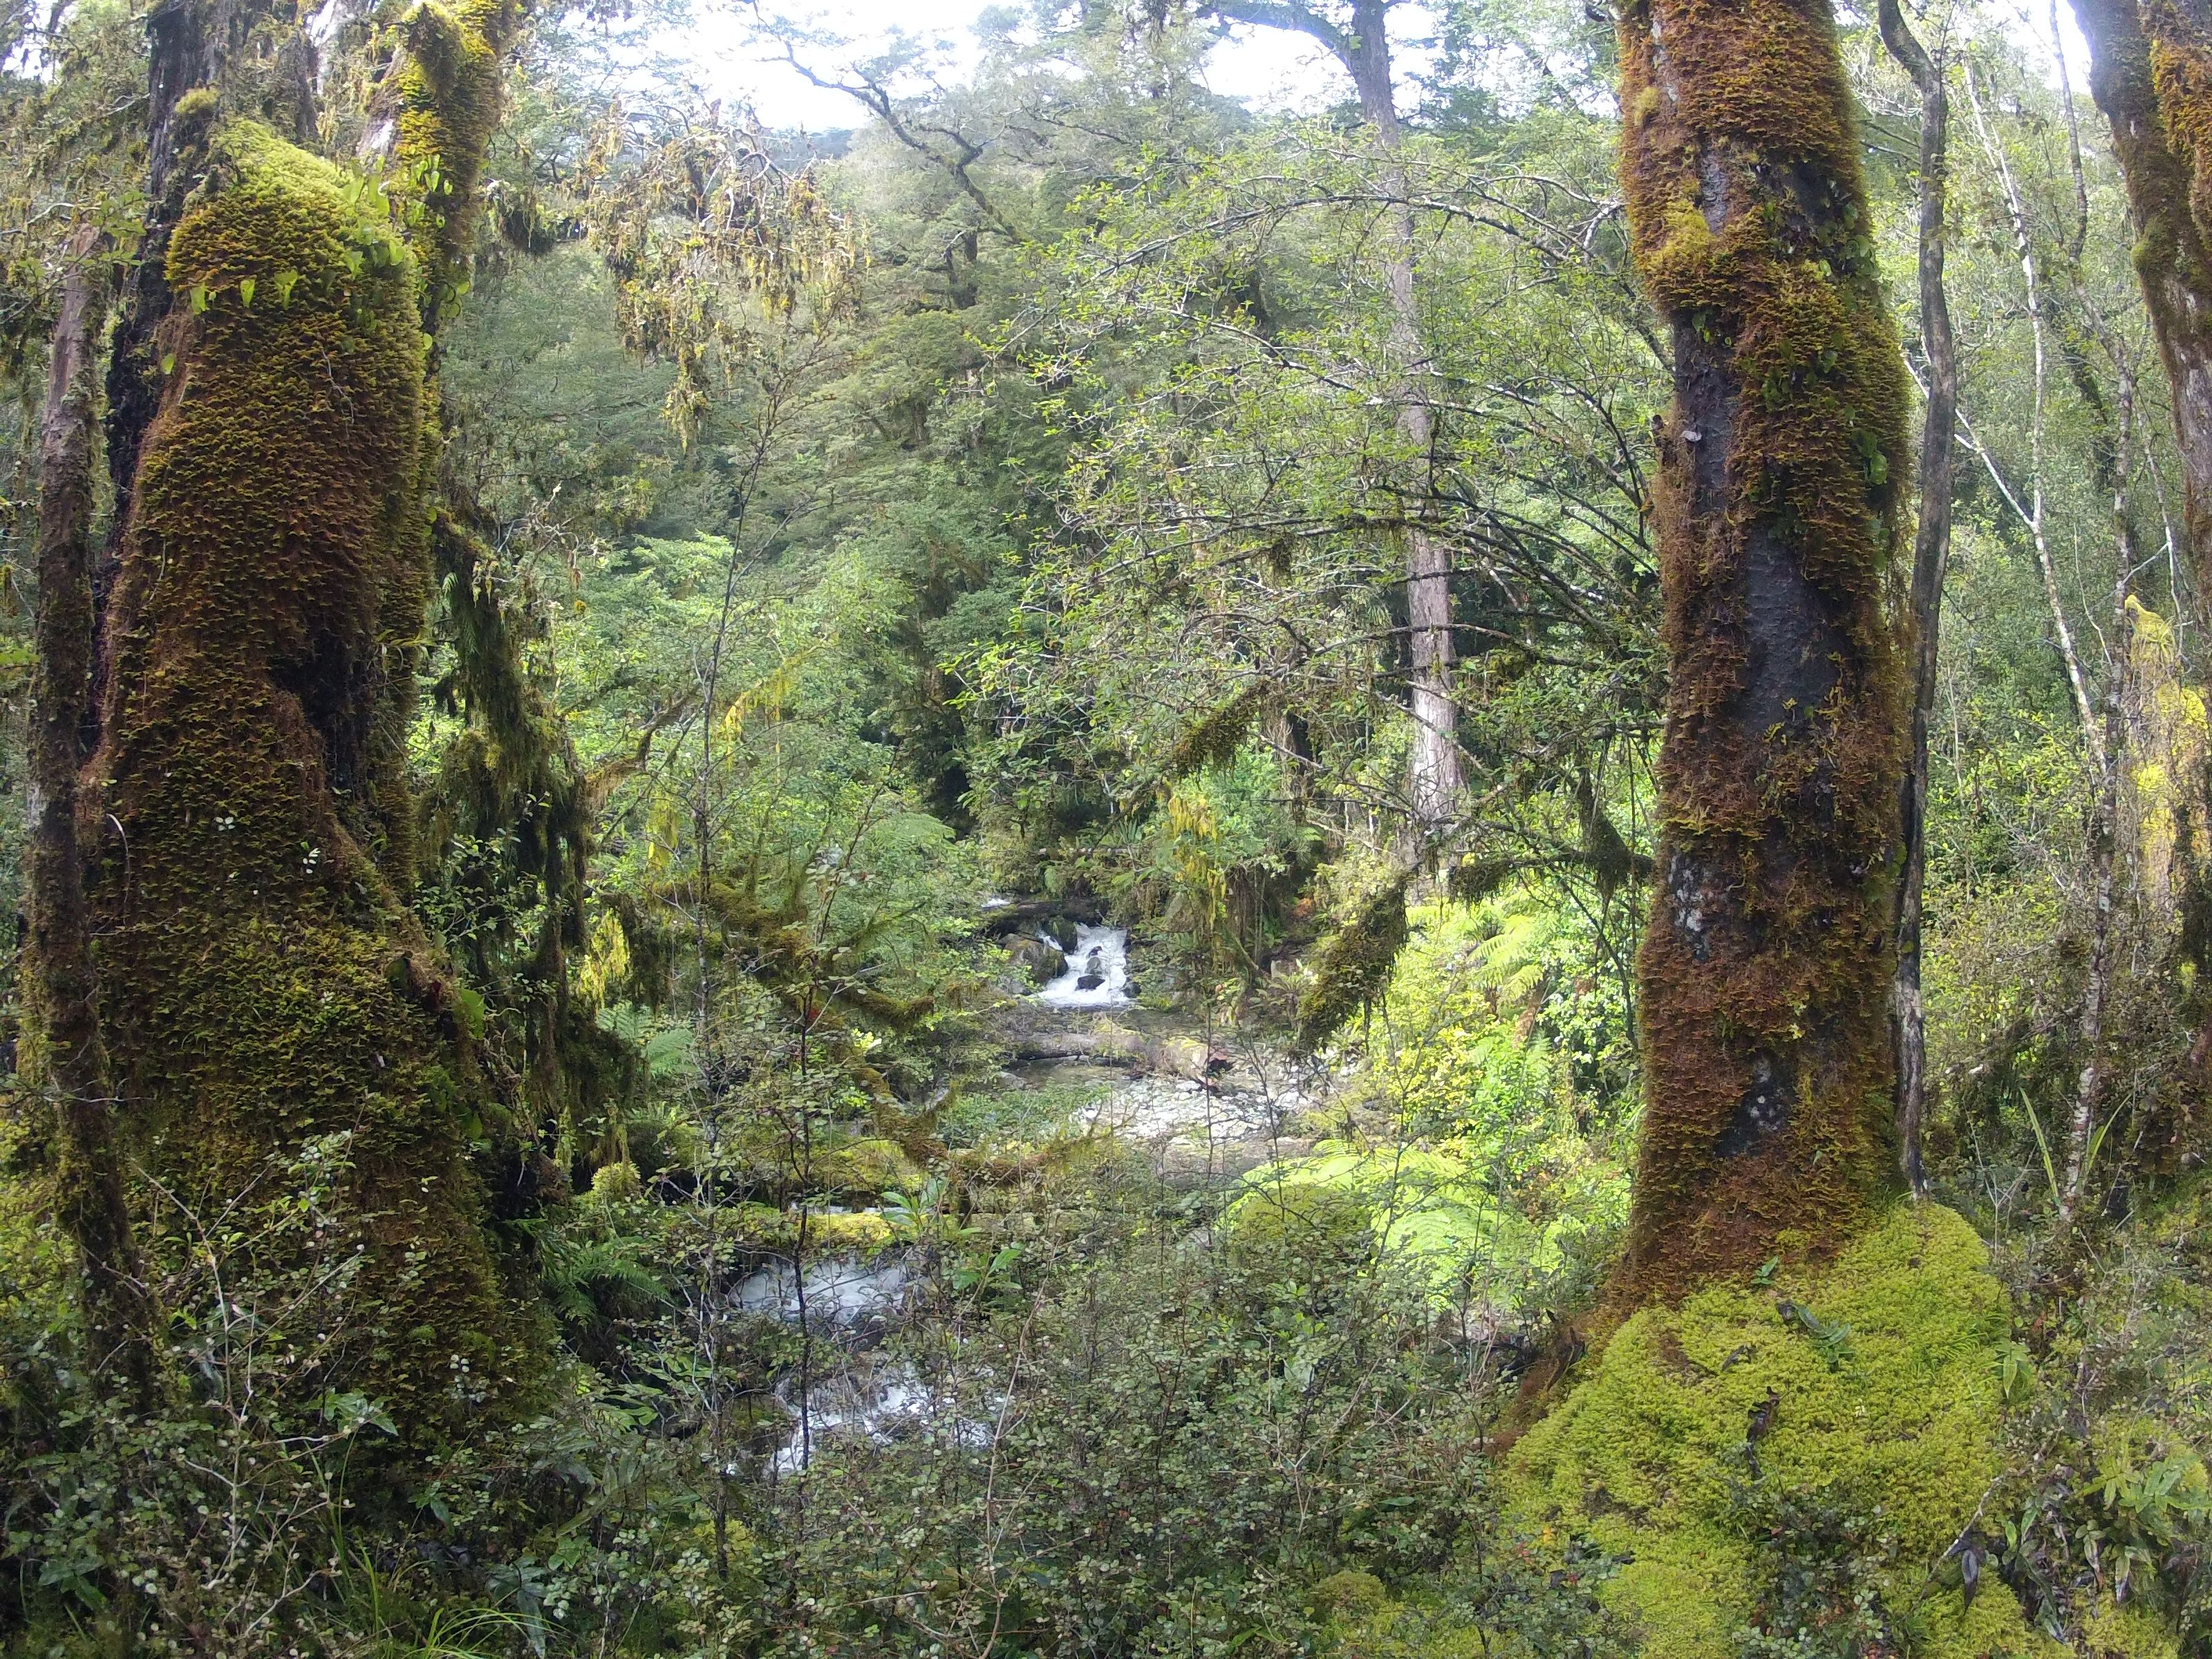 Greens of forest in Hollyford Valley, Fiordland National Park, NZ